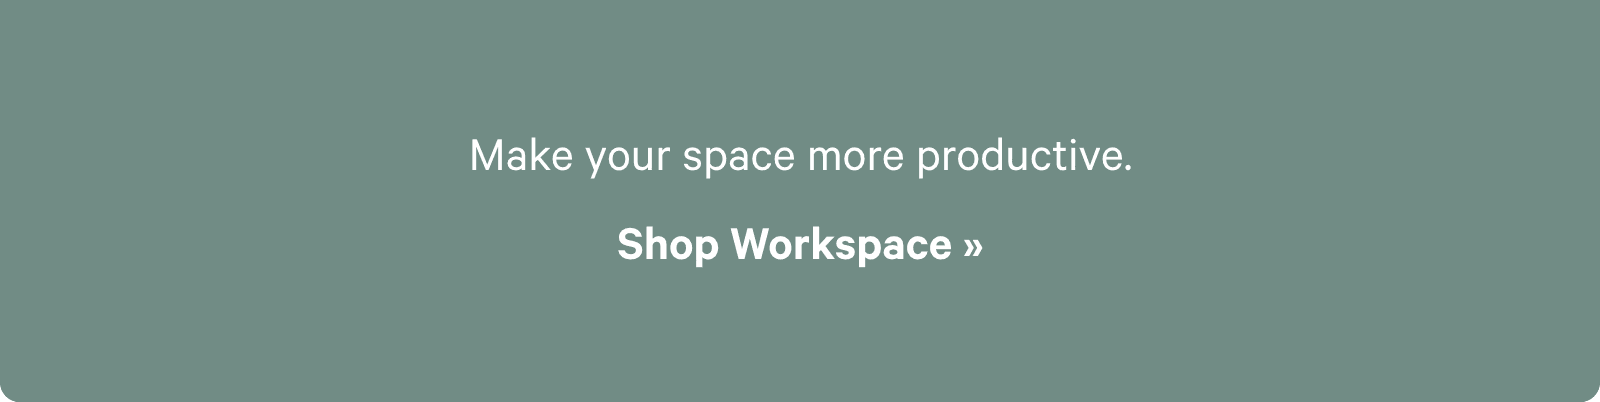 Make your space more productive. Shop Workspace ?